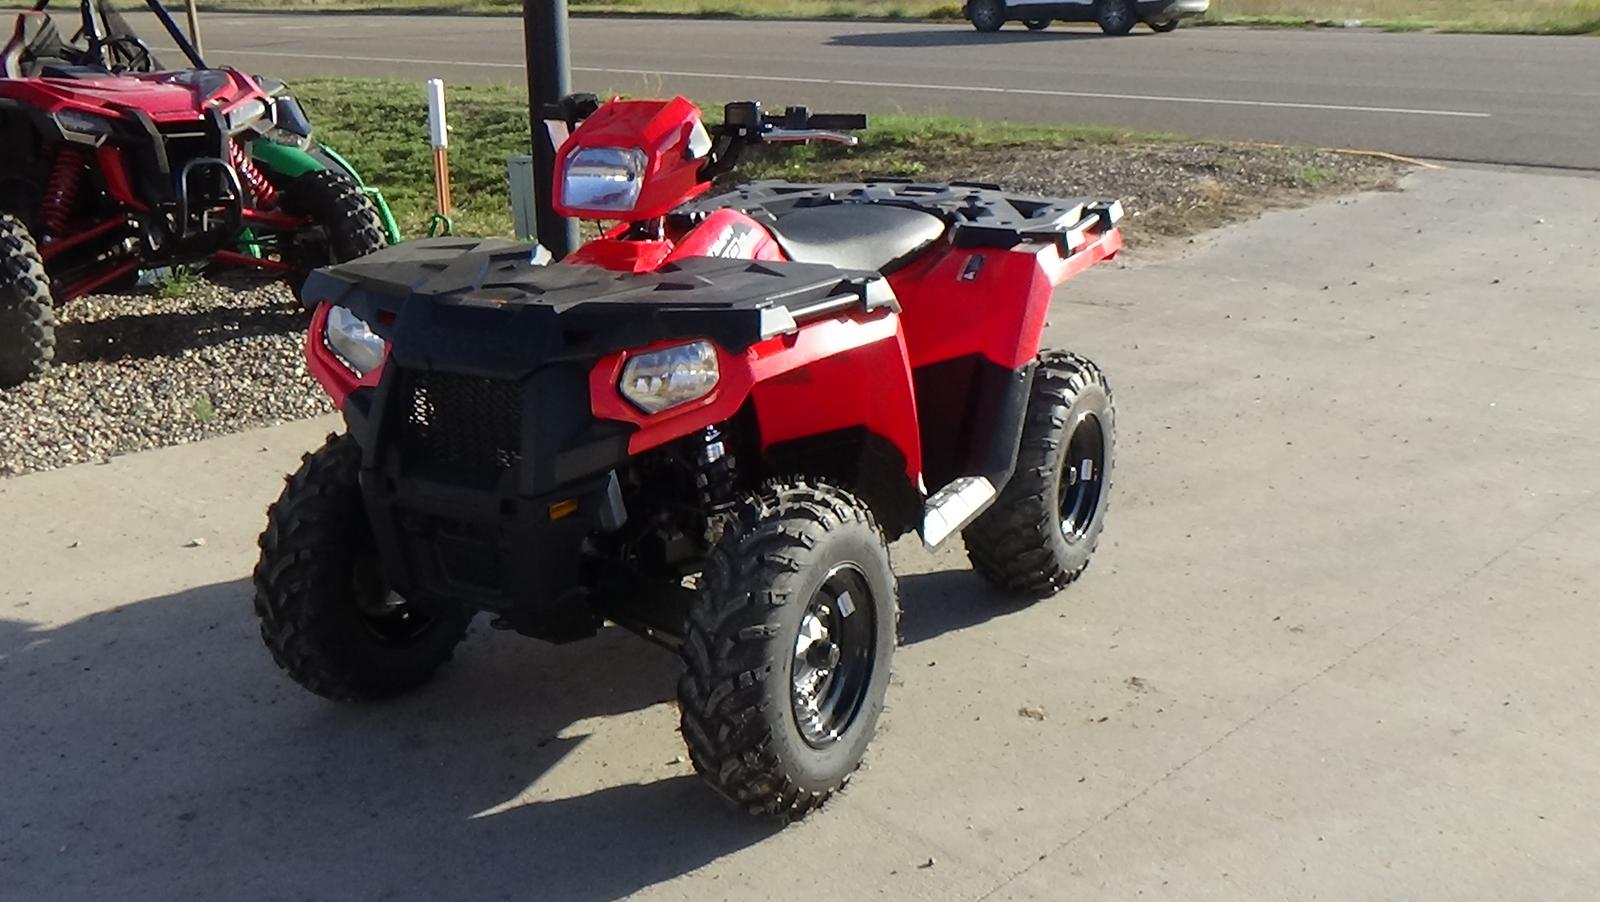 2019 polaris industries sportsman� 450 h.o. indy red